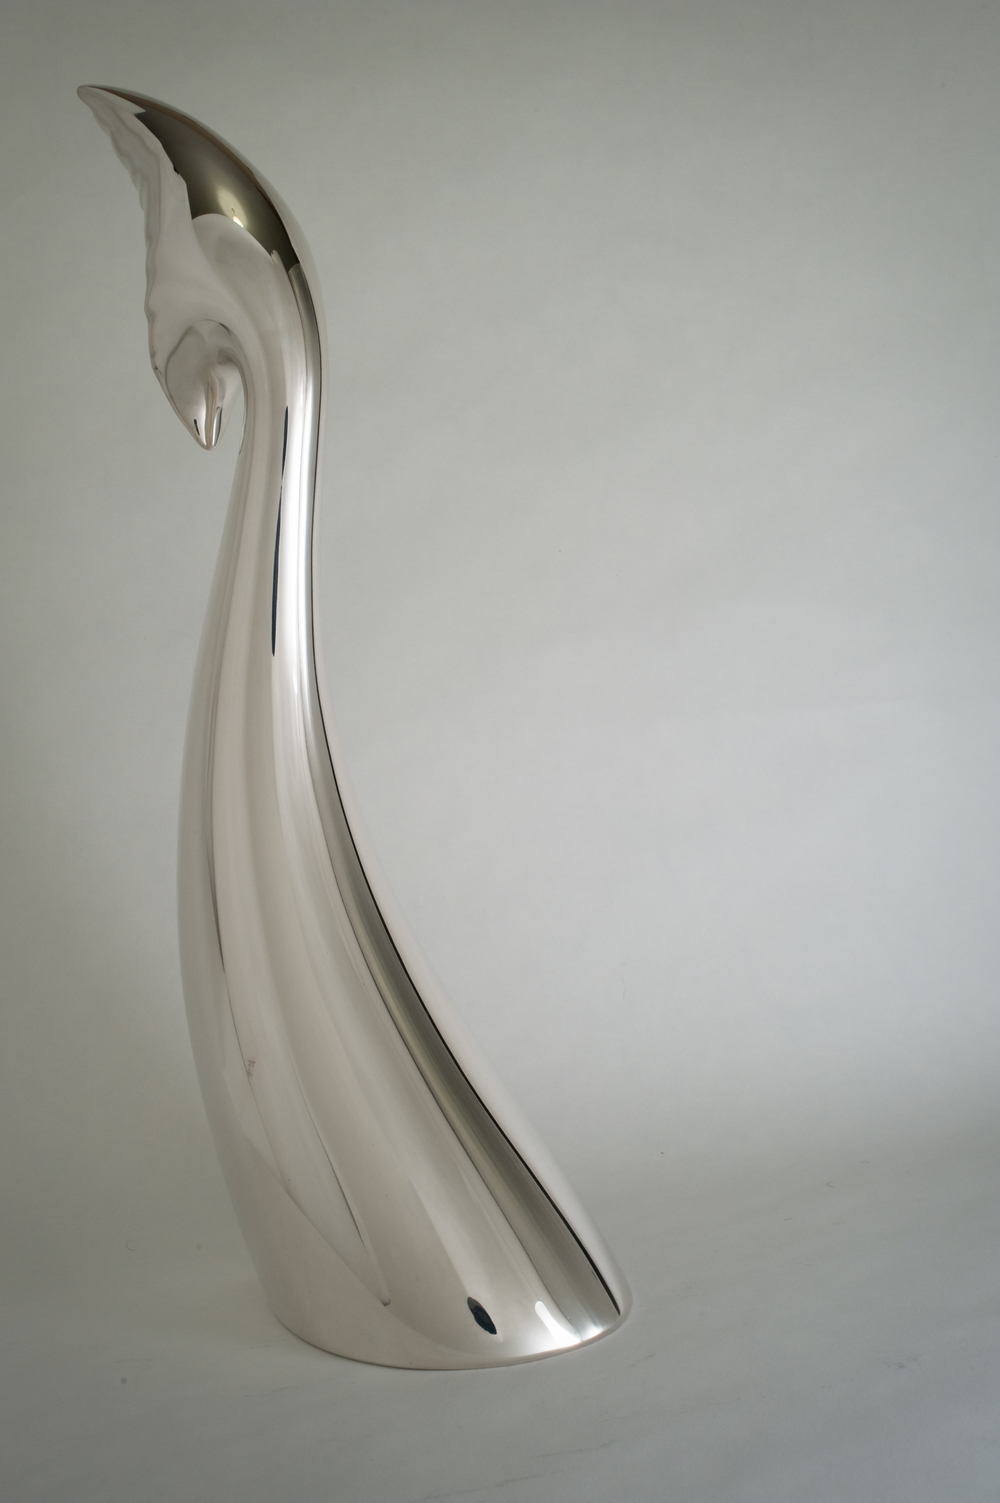 Fin Vase: The Goldsmiths' Collection